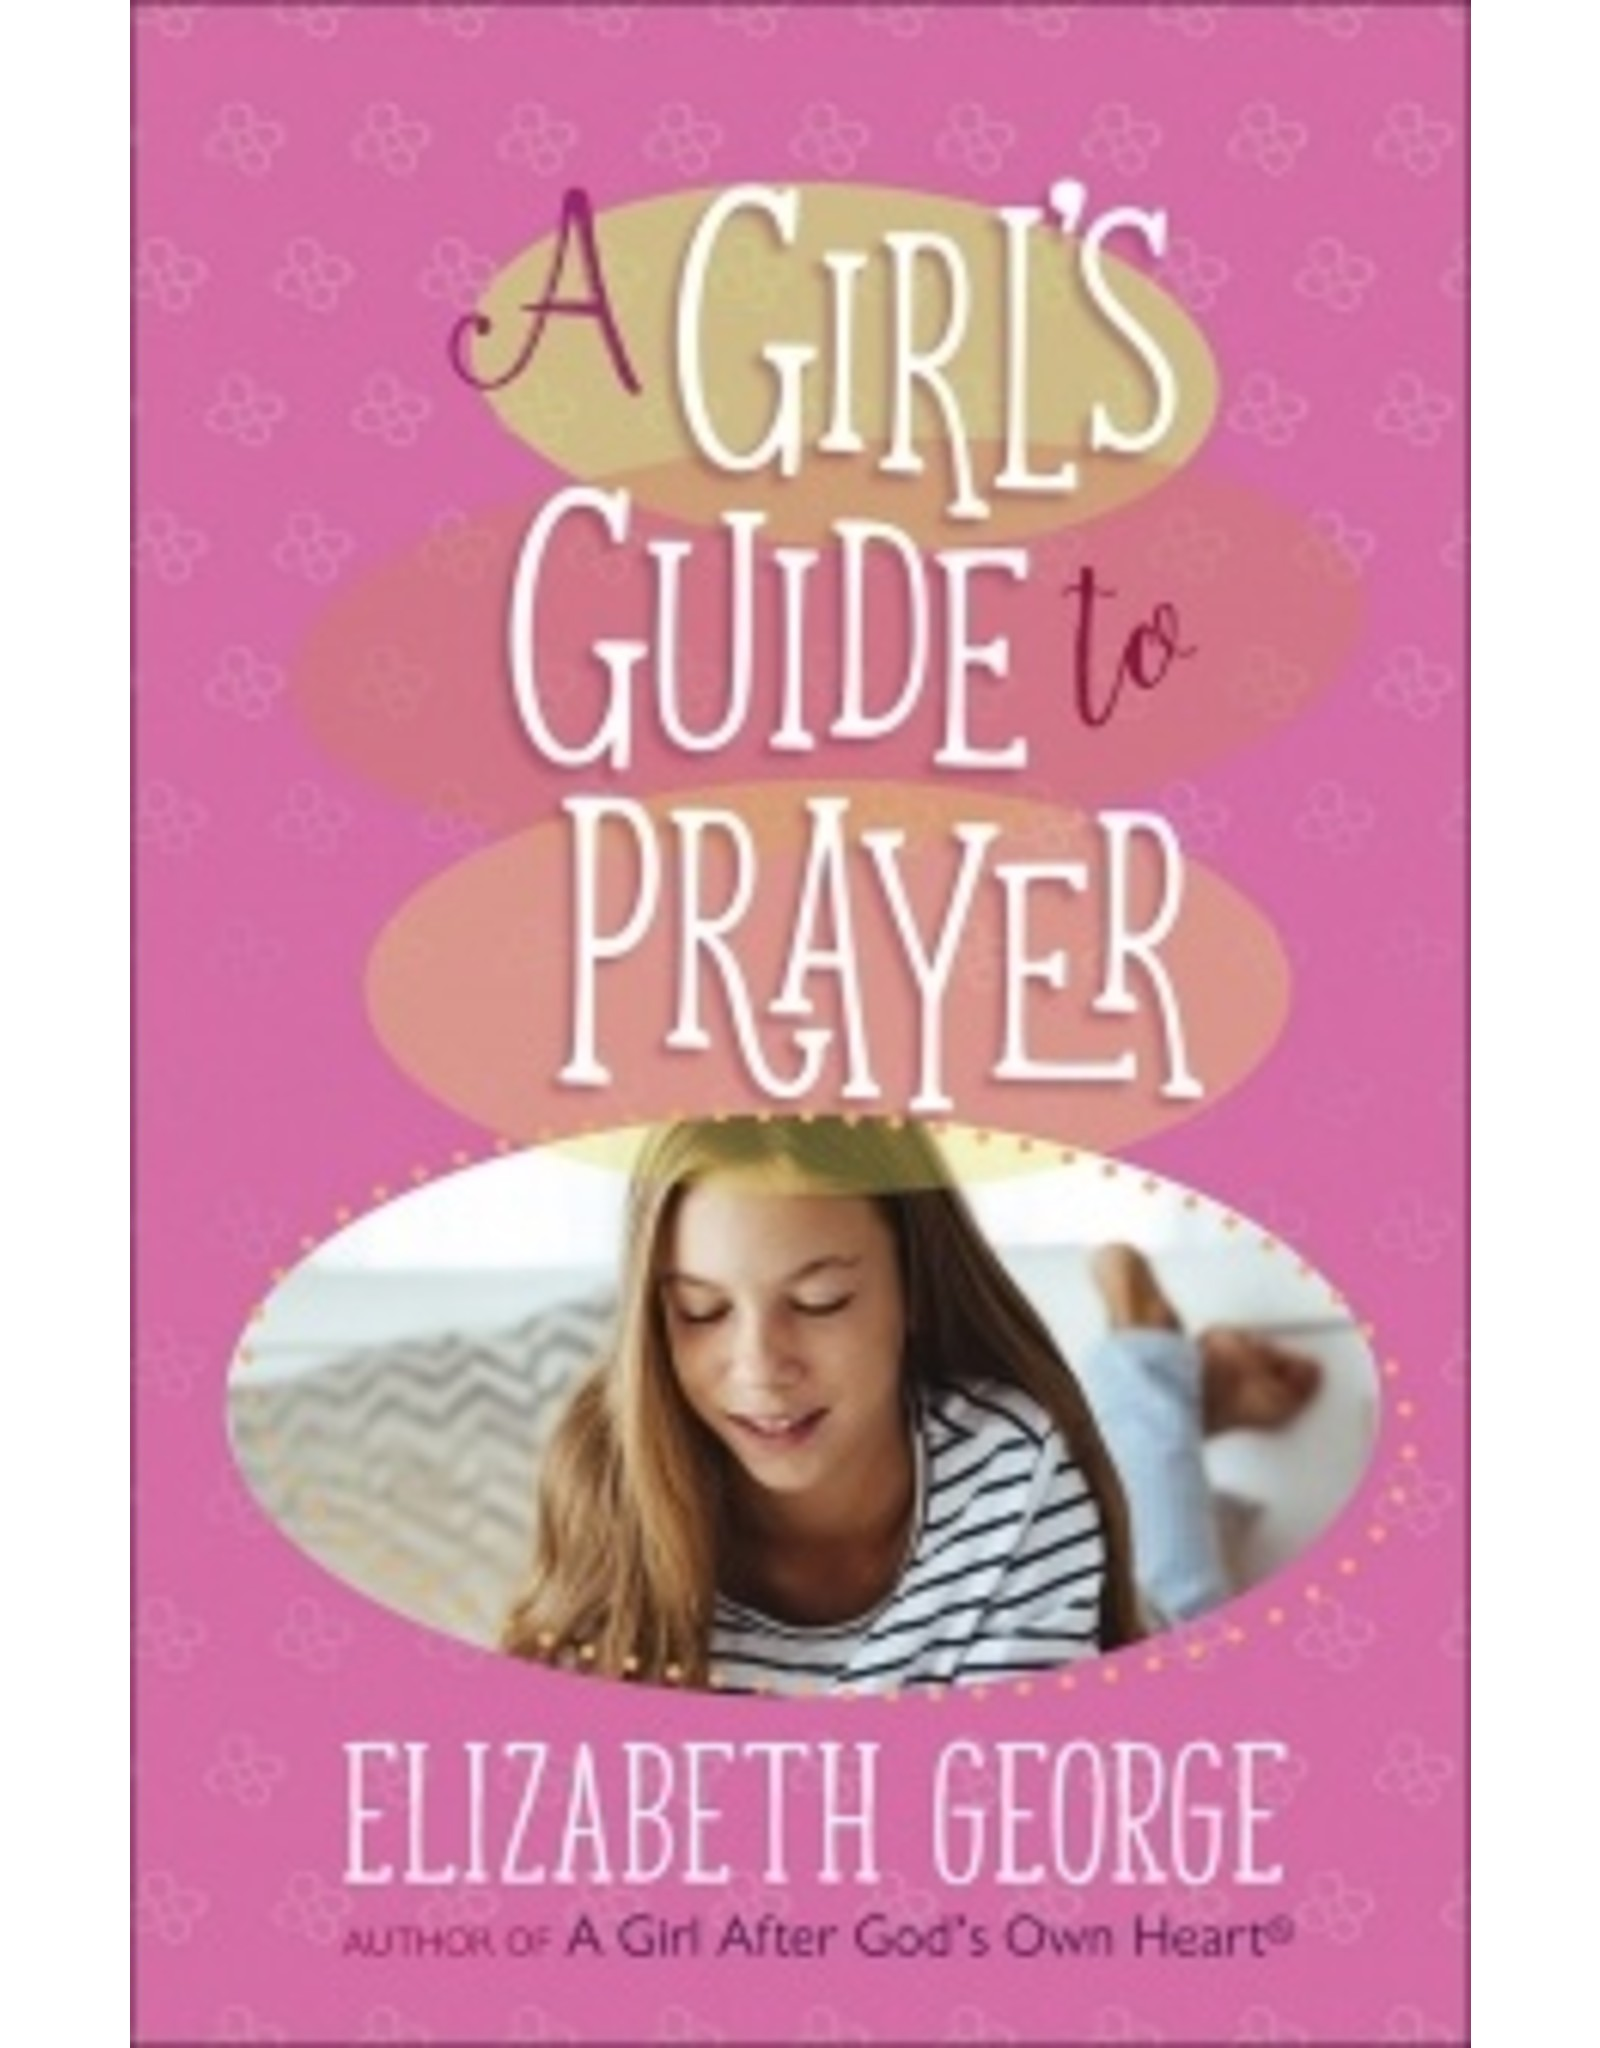 George A Girl's Guide to Prayer